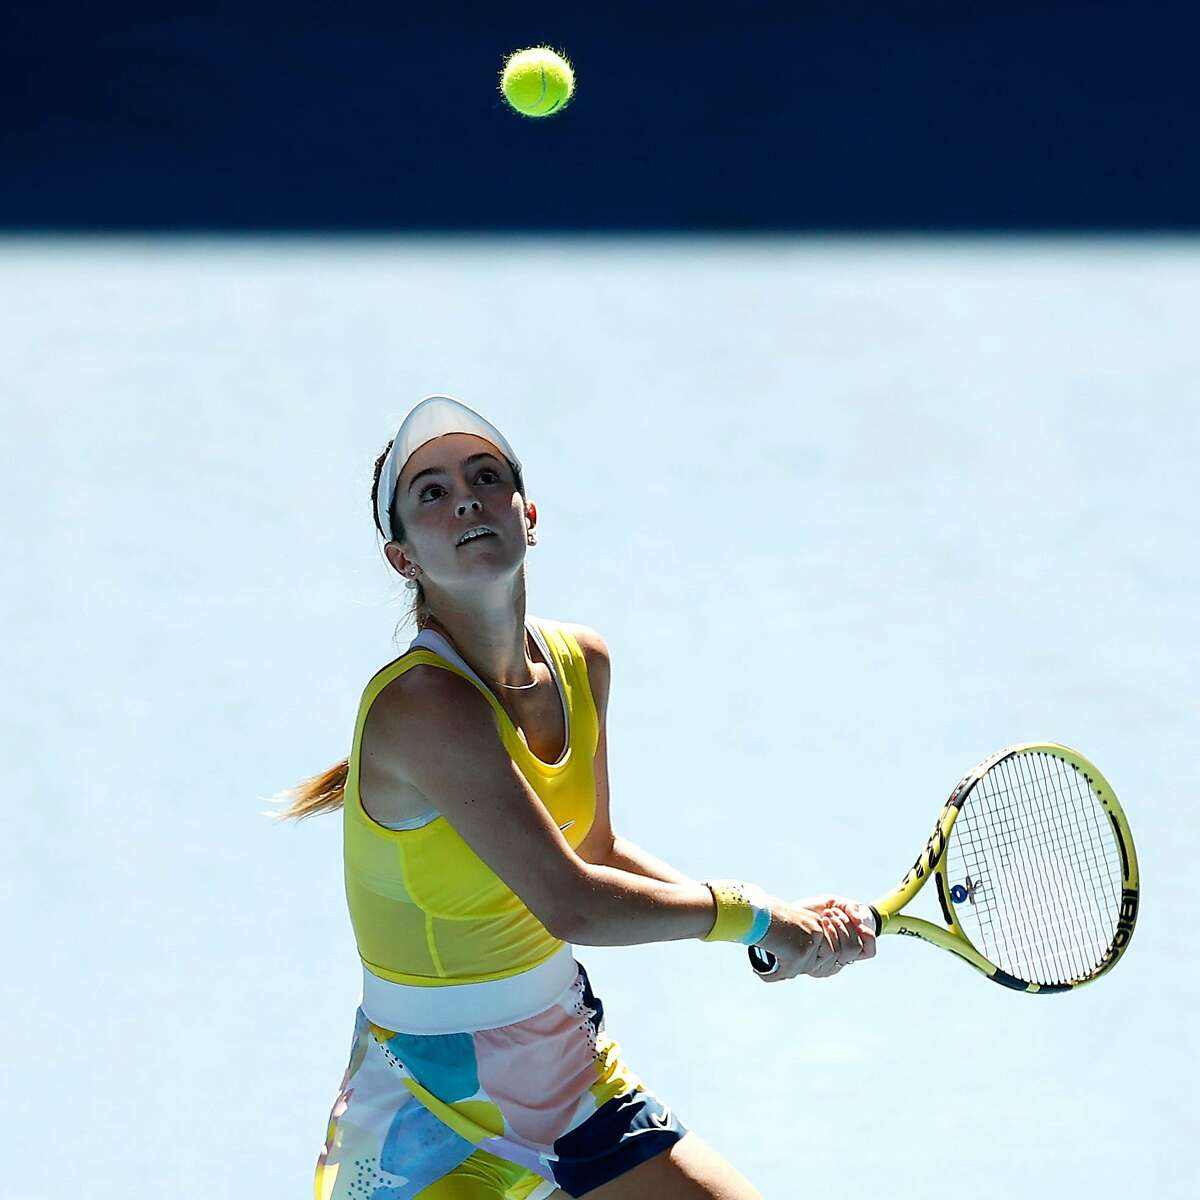 MELBOURNE, AUSTRALIA - JANUARY 25: Catherine Bellis of the Unites States plays a backhand during her Women's Singles third round match against Elise Mertens of Belgium on day six of the 2020 Australian Open at Melbourne Park on January 25, 2020 in Melbou